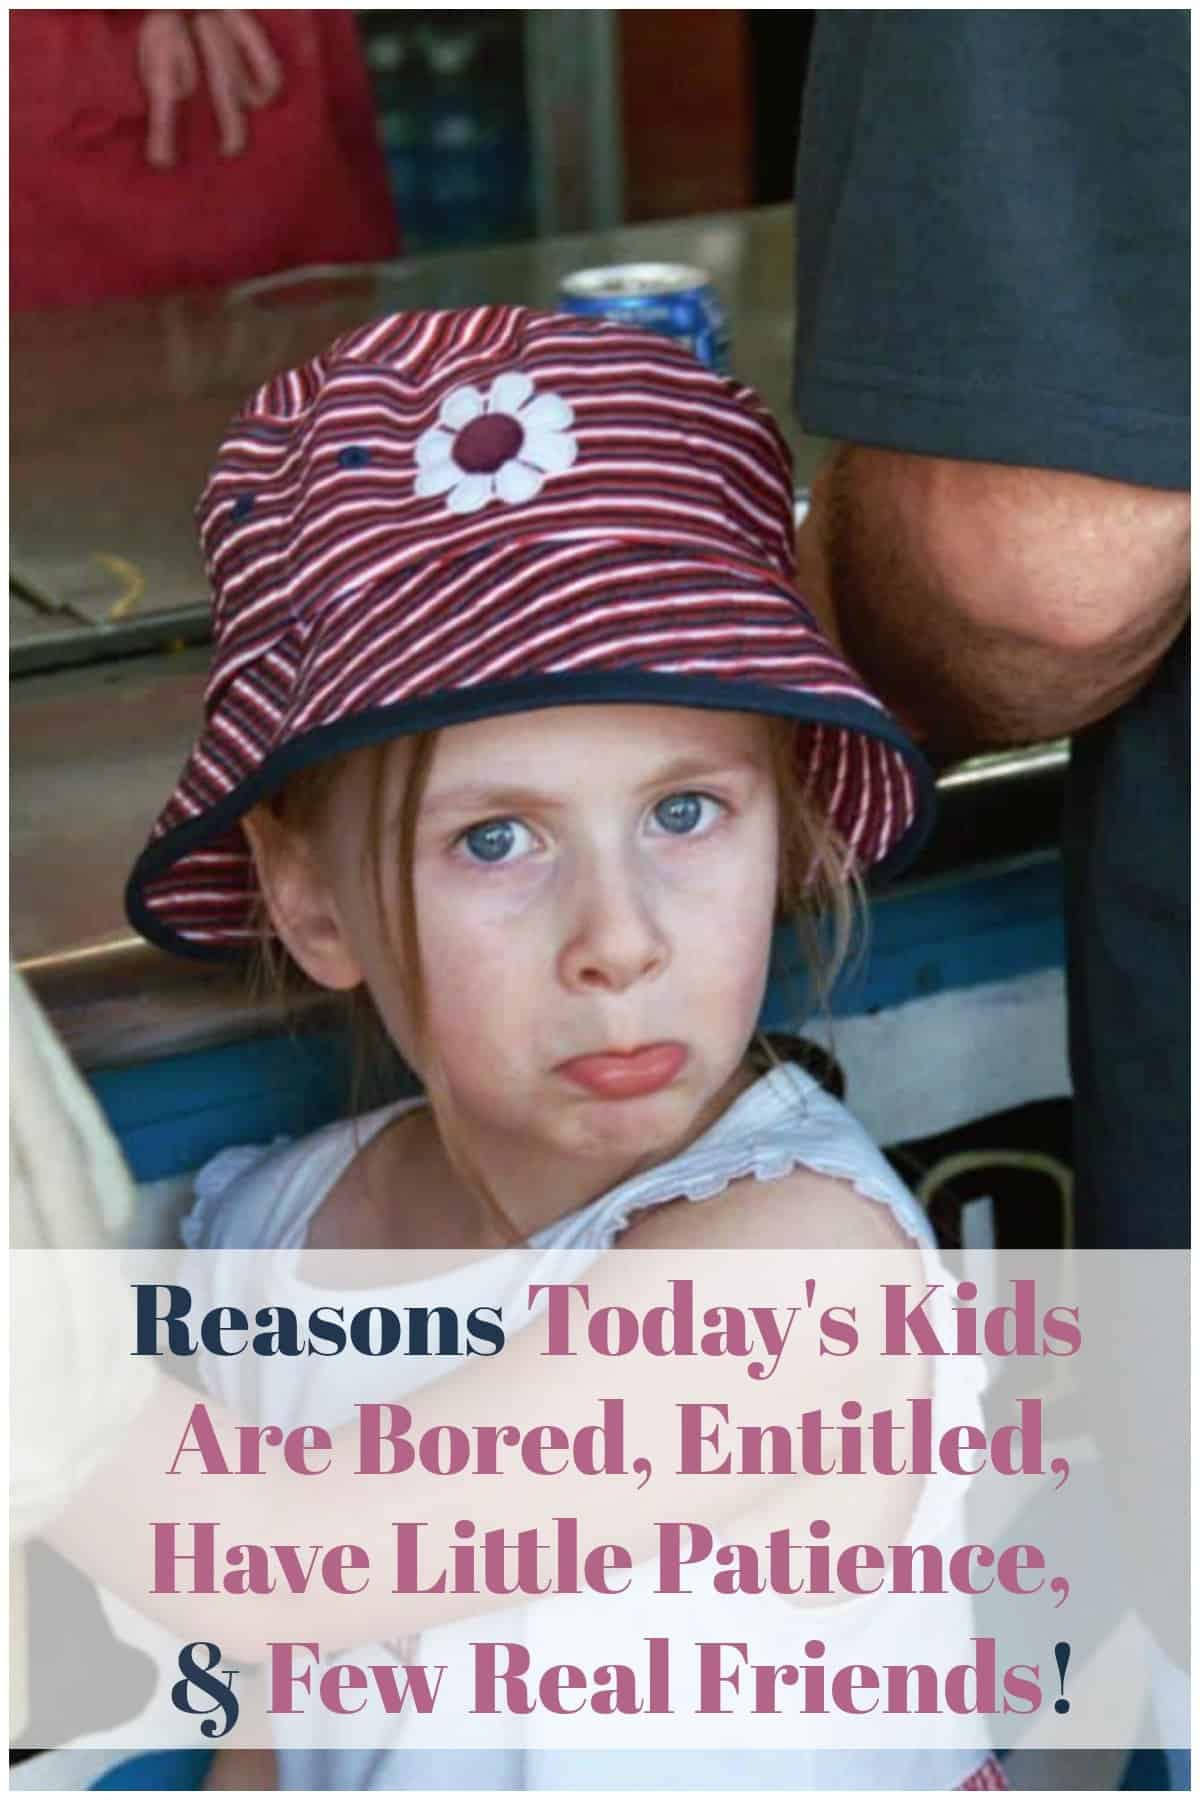 Reasons Today's Kids Are Bored at School, Feel Entitled, Have Little Patience and Few Real Friends.